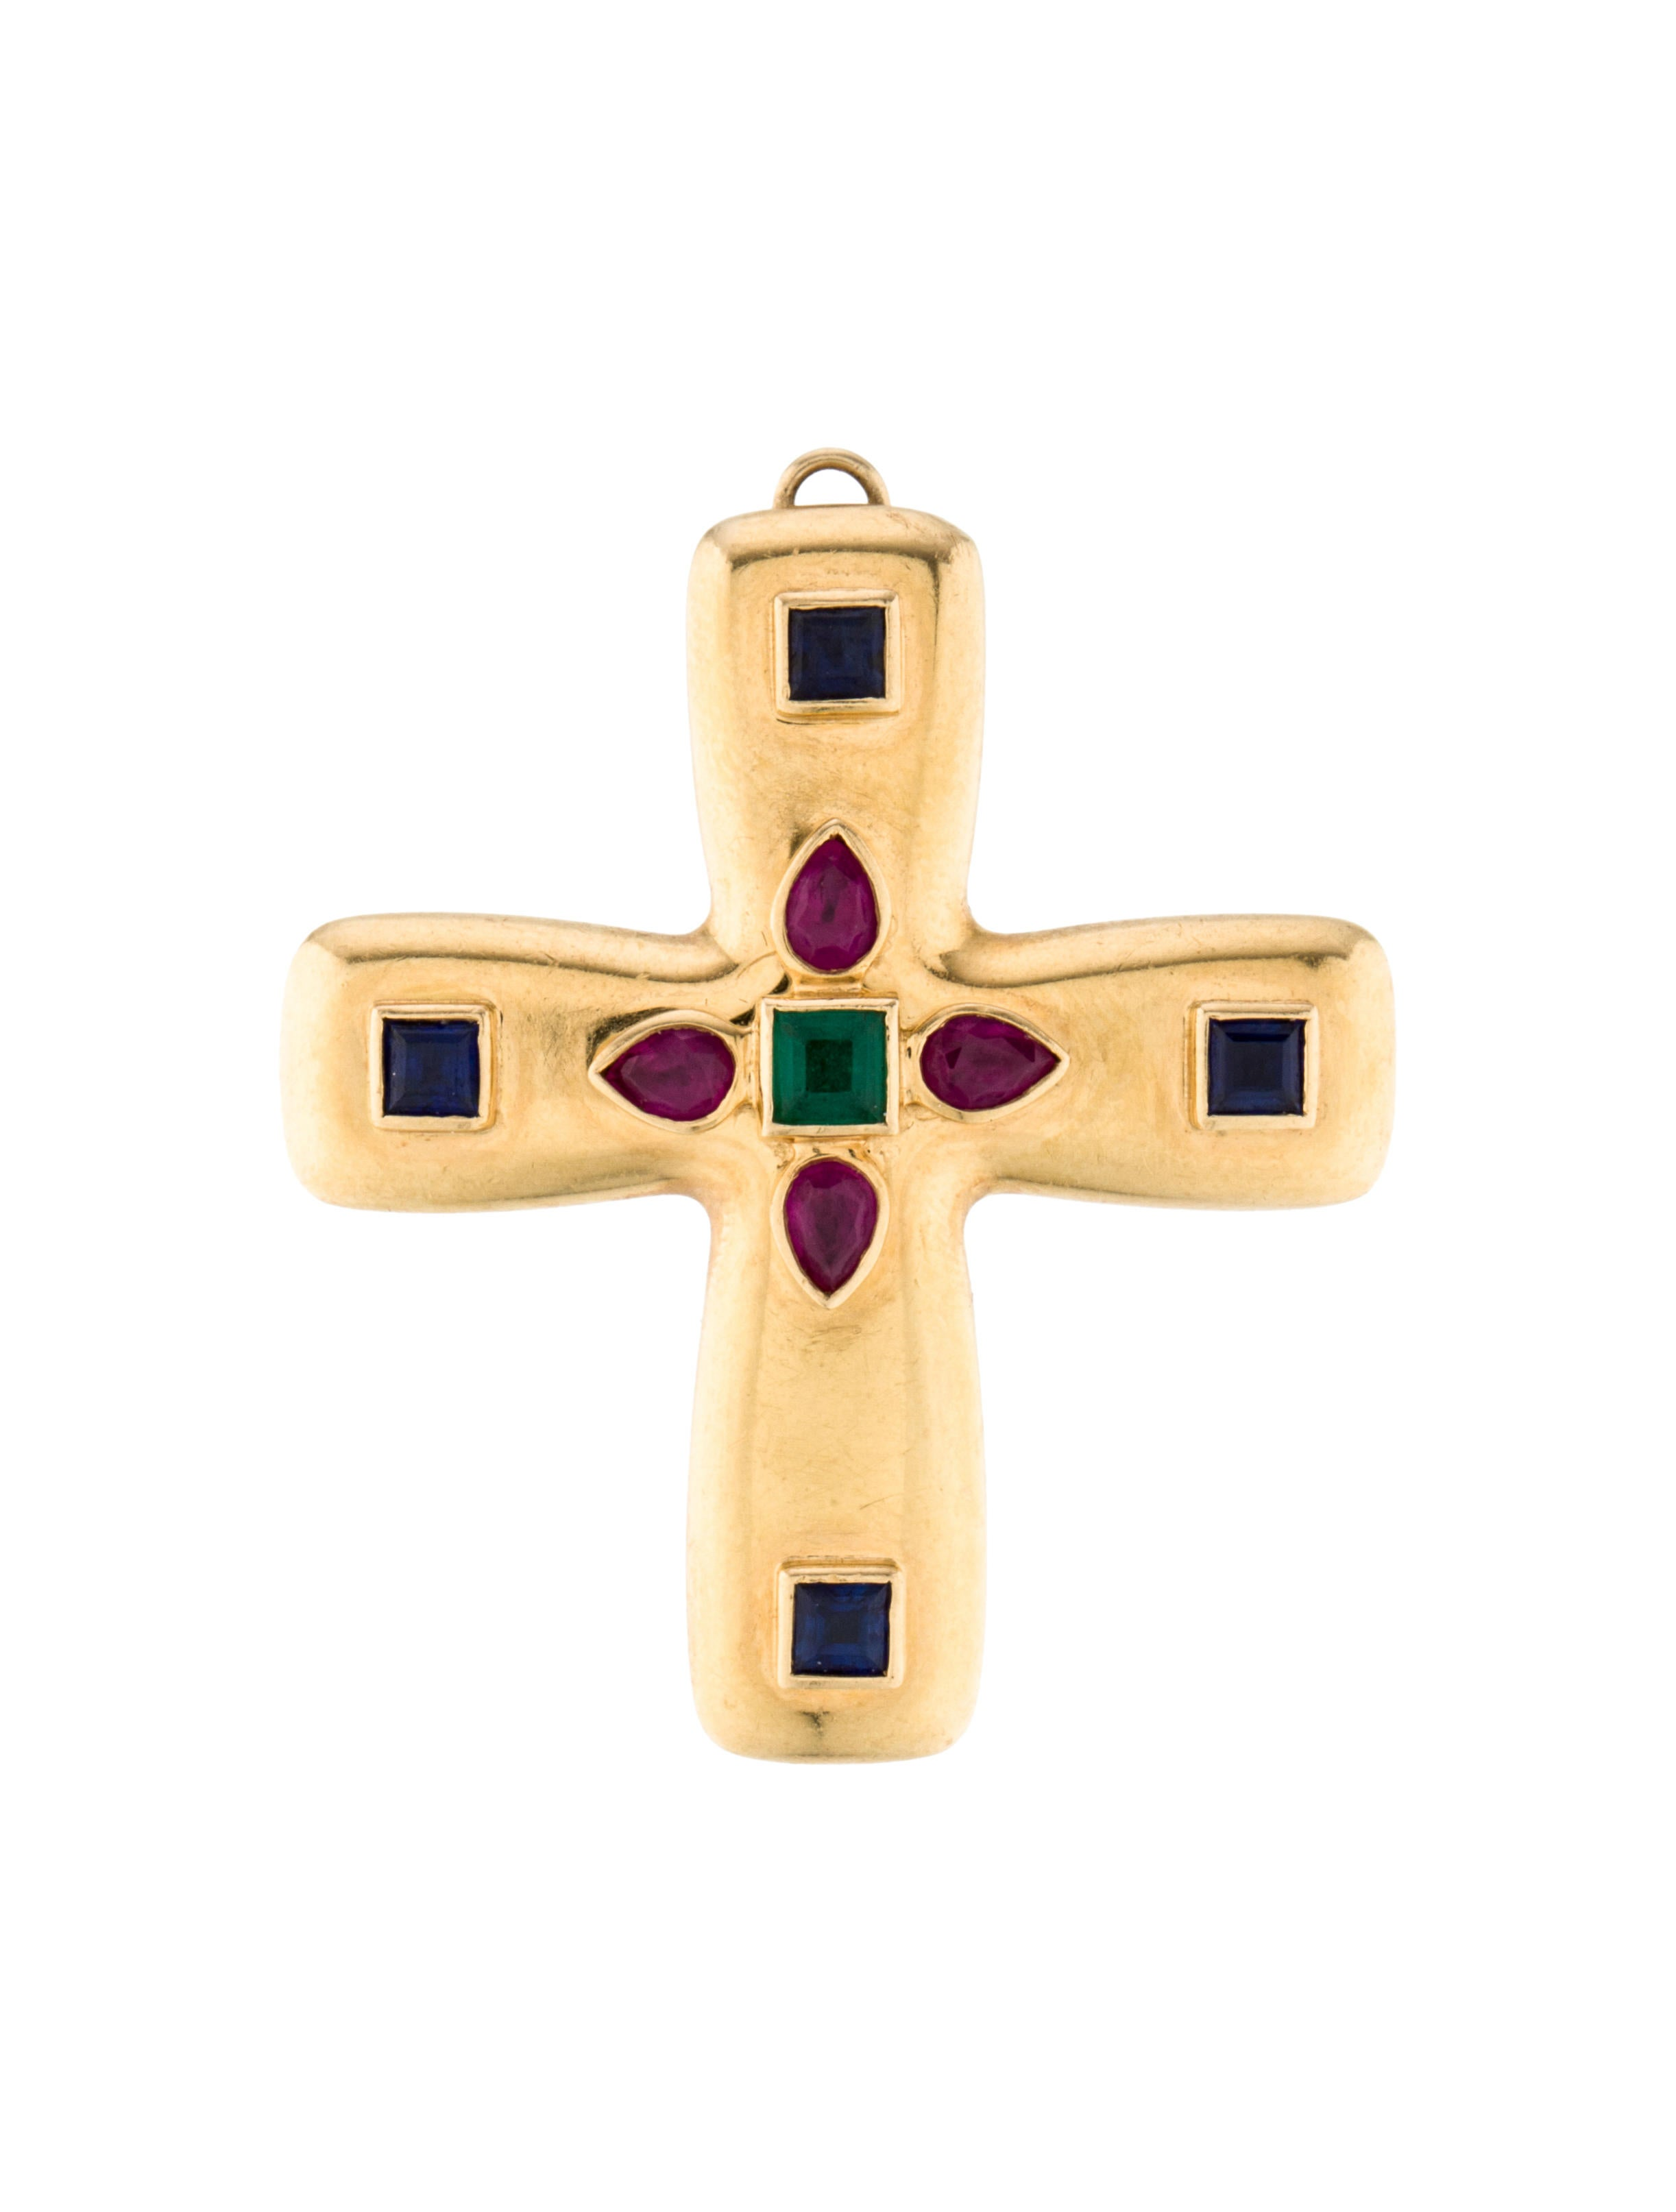 Cartier byzantine cross pendant necklaces crt29856 the realreal byzantine cross pendant mozeypictures Image collections